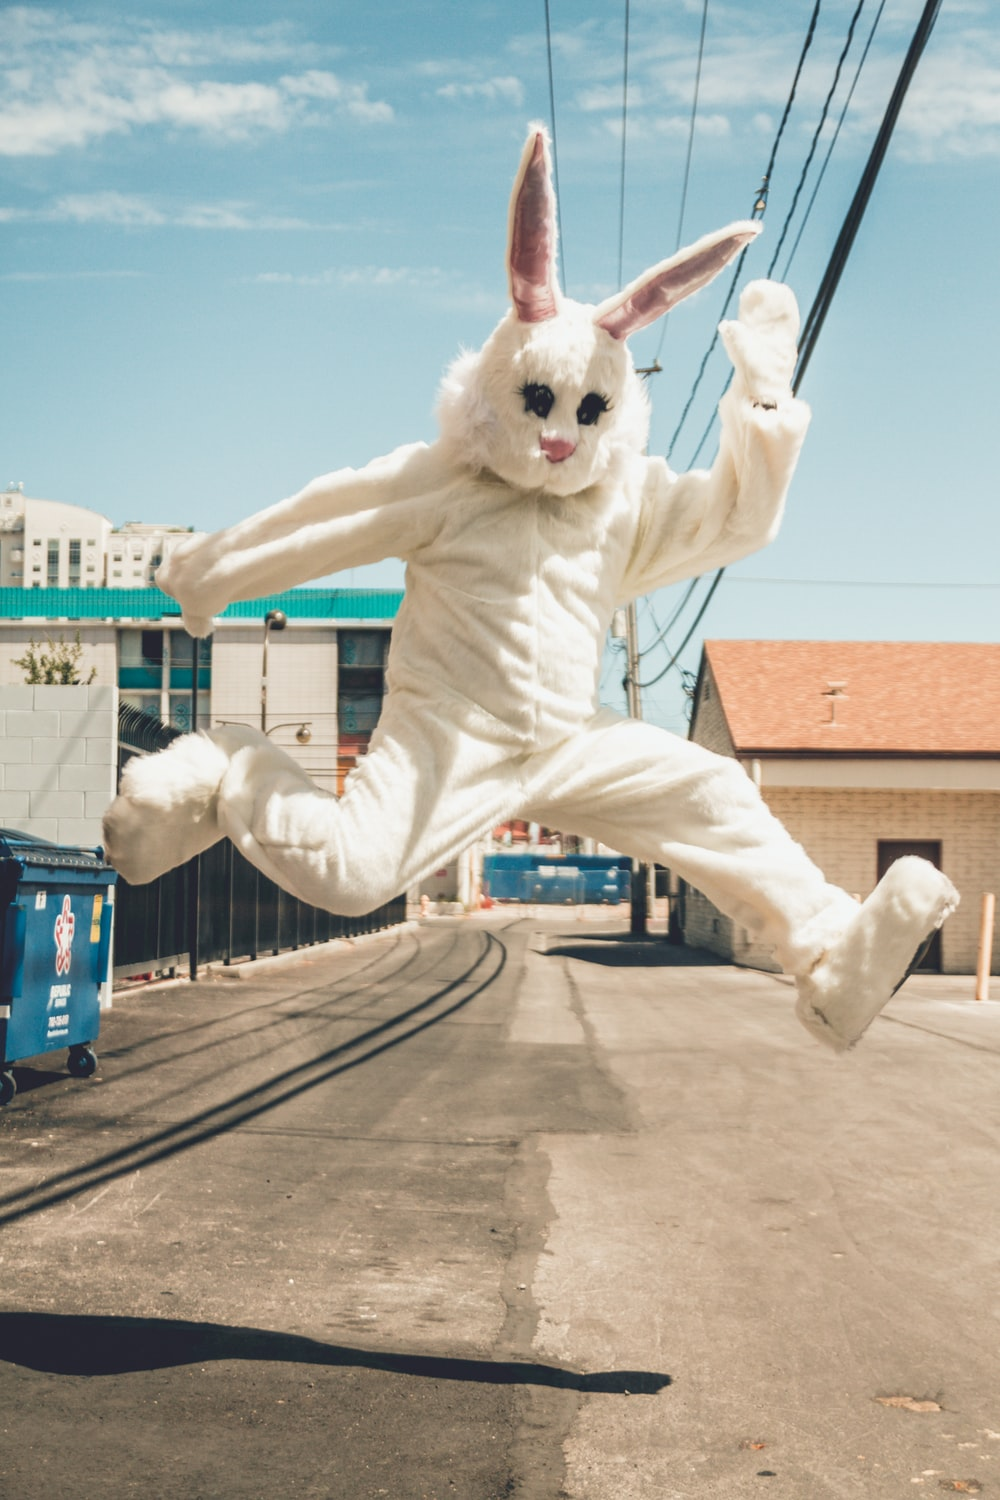 man in bunny costume in mid air in time lapse photography